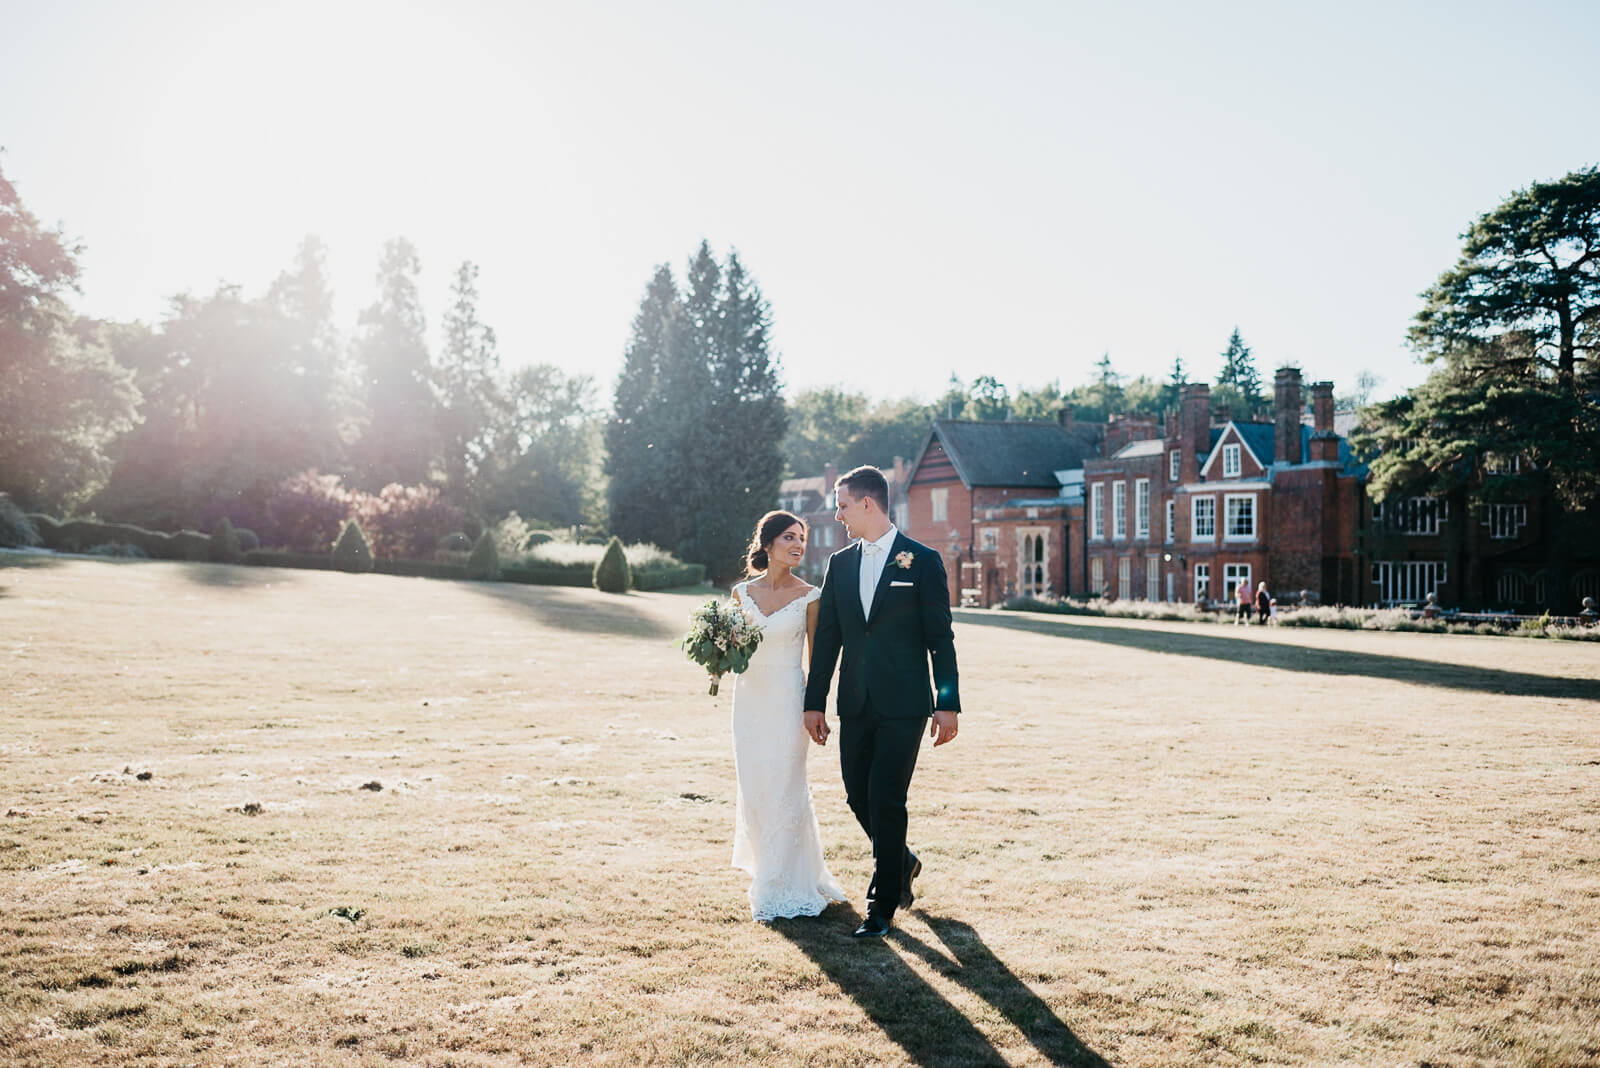 sunset portrait of bride and groom at Dorking wedding venue, Wotton House